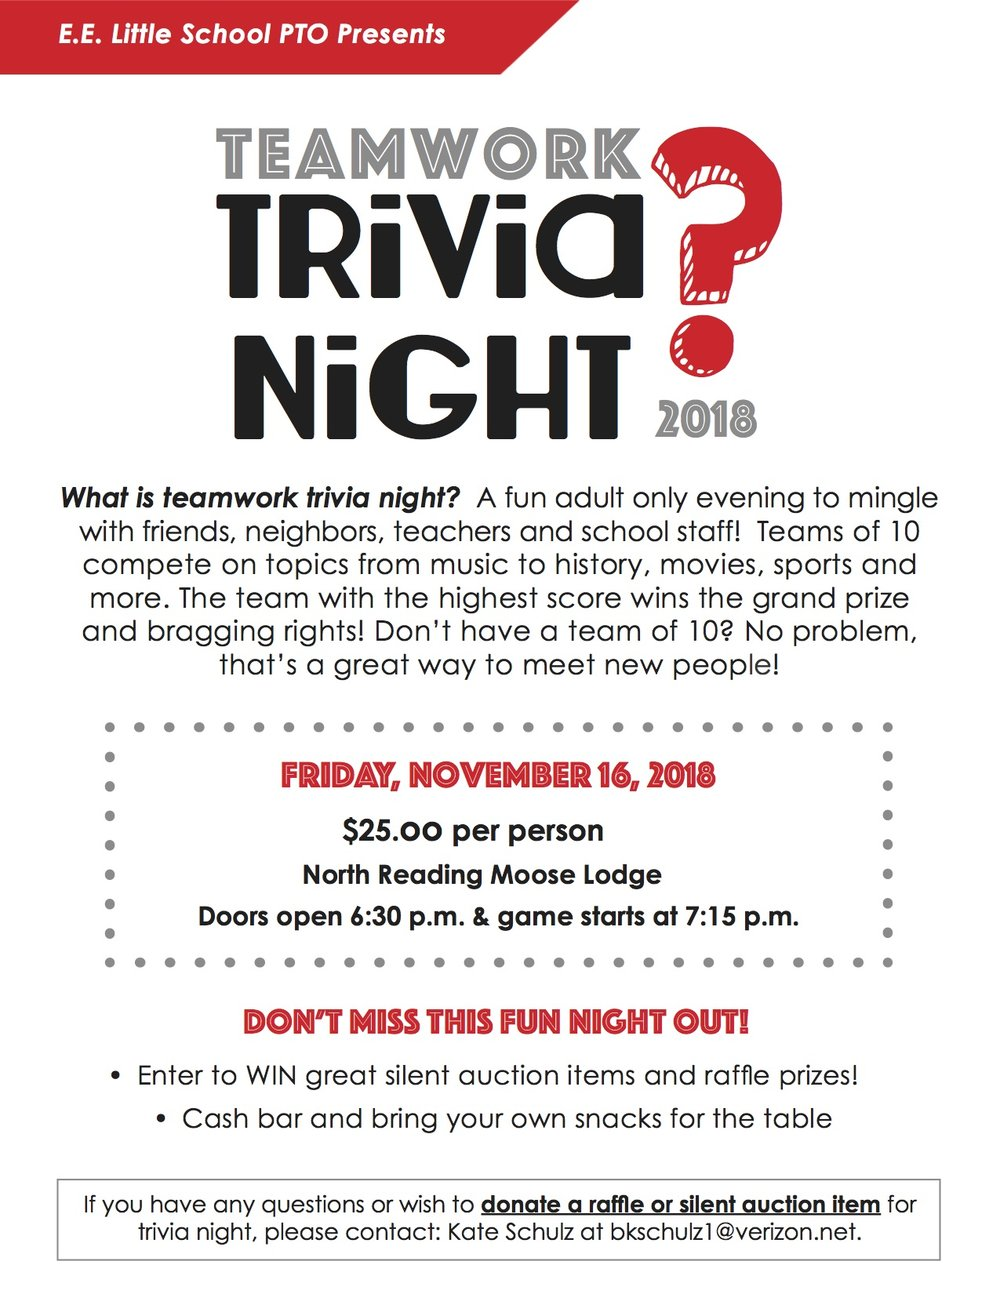 TrivianNight_flyer2018_final.jpg